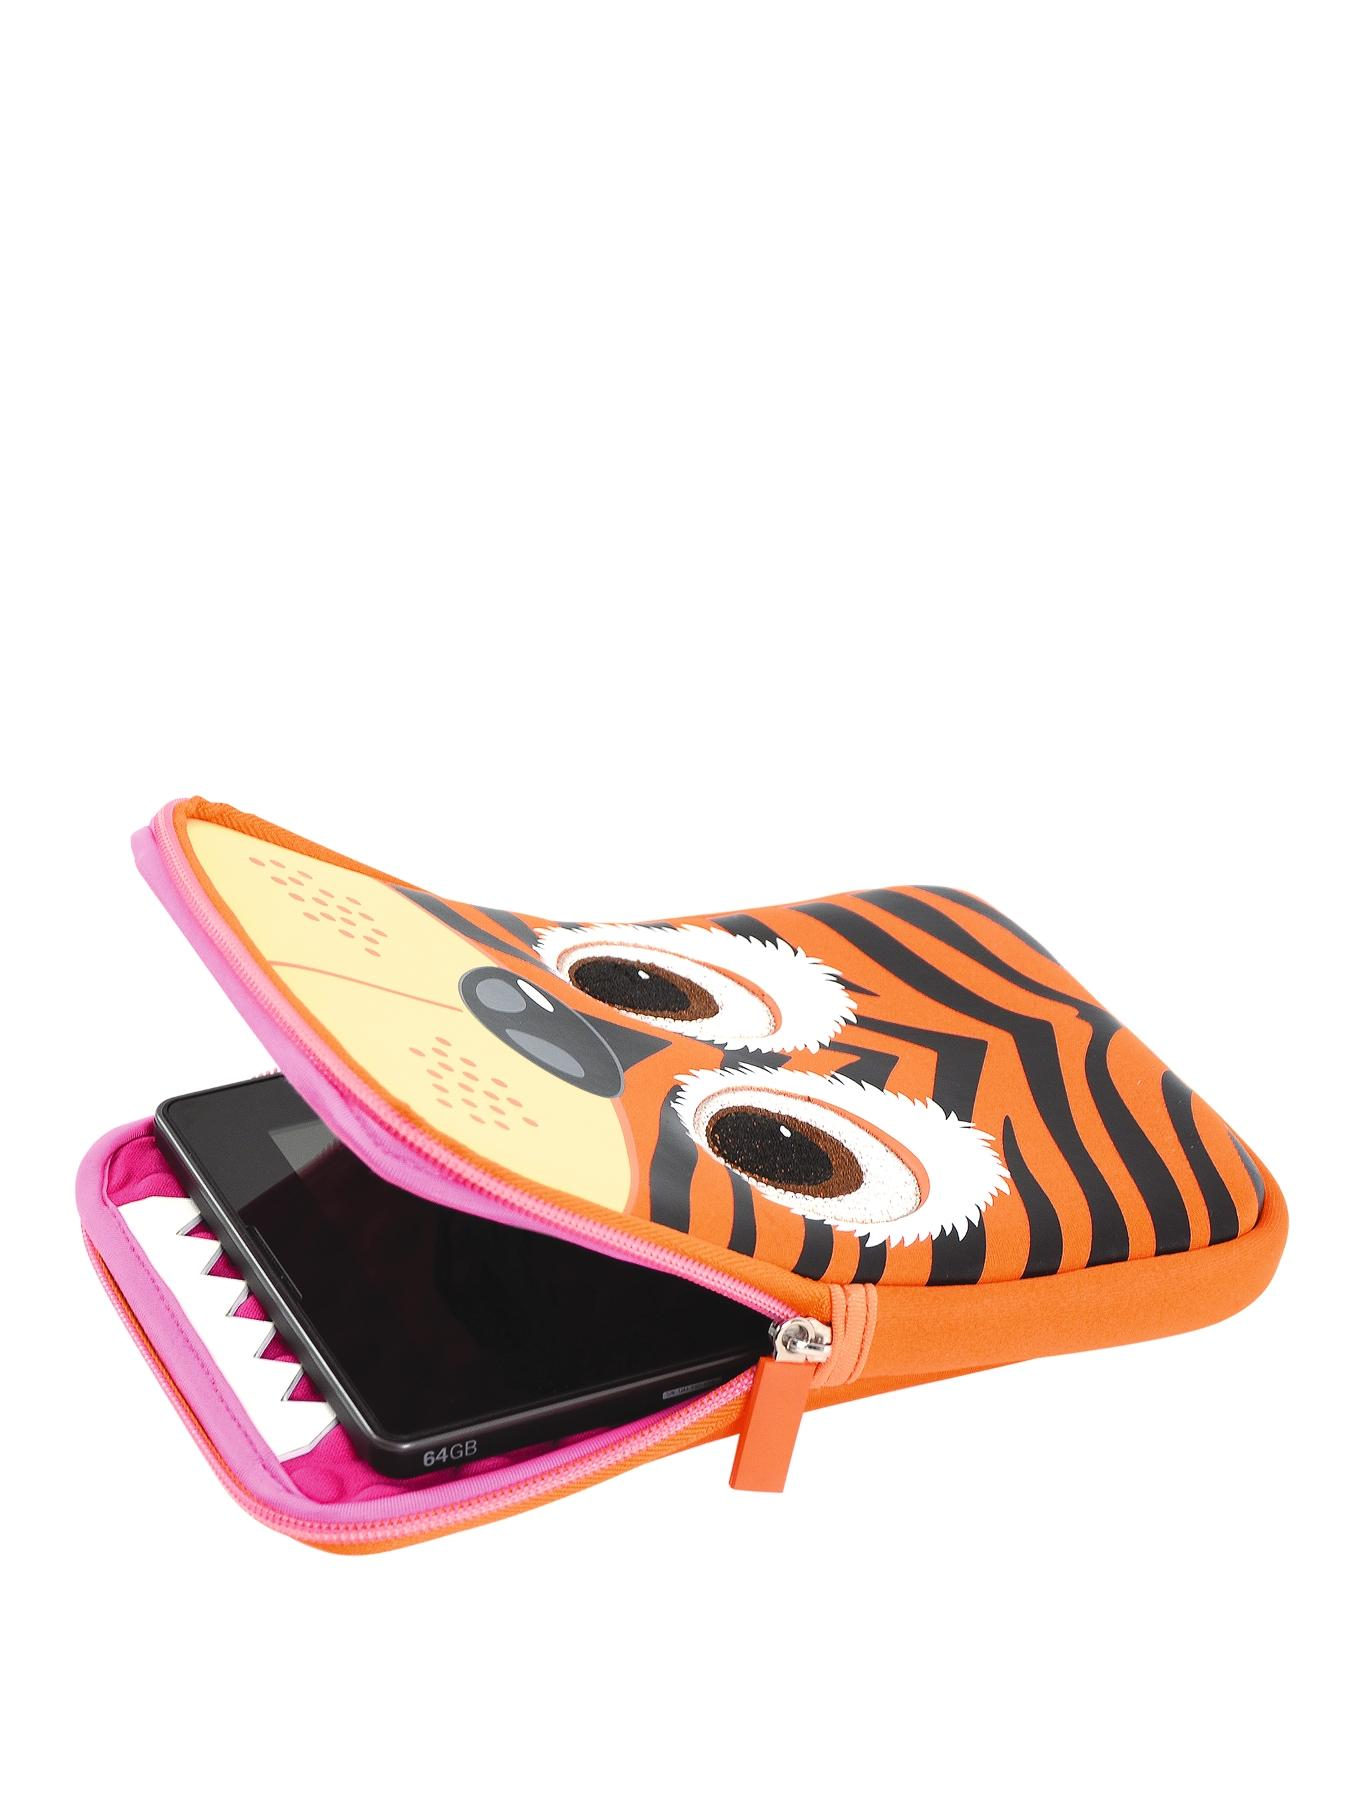 Universal 7-8 inch Character Tablet Stand Case - Tiger